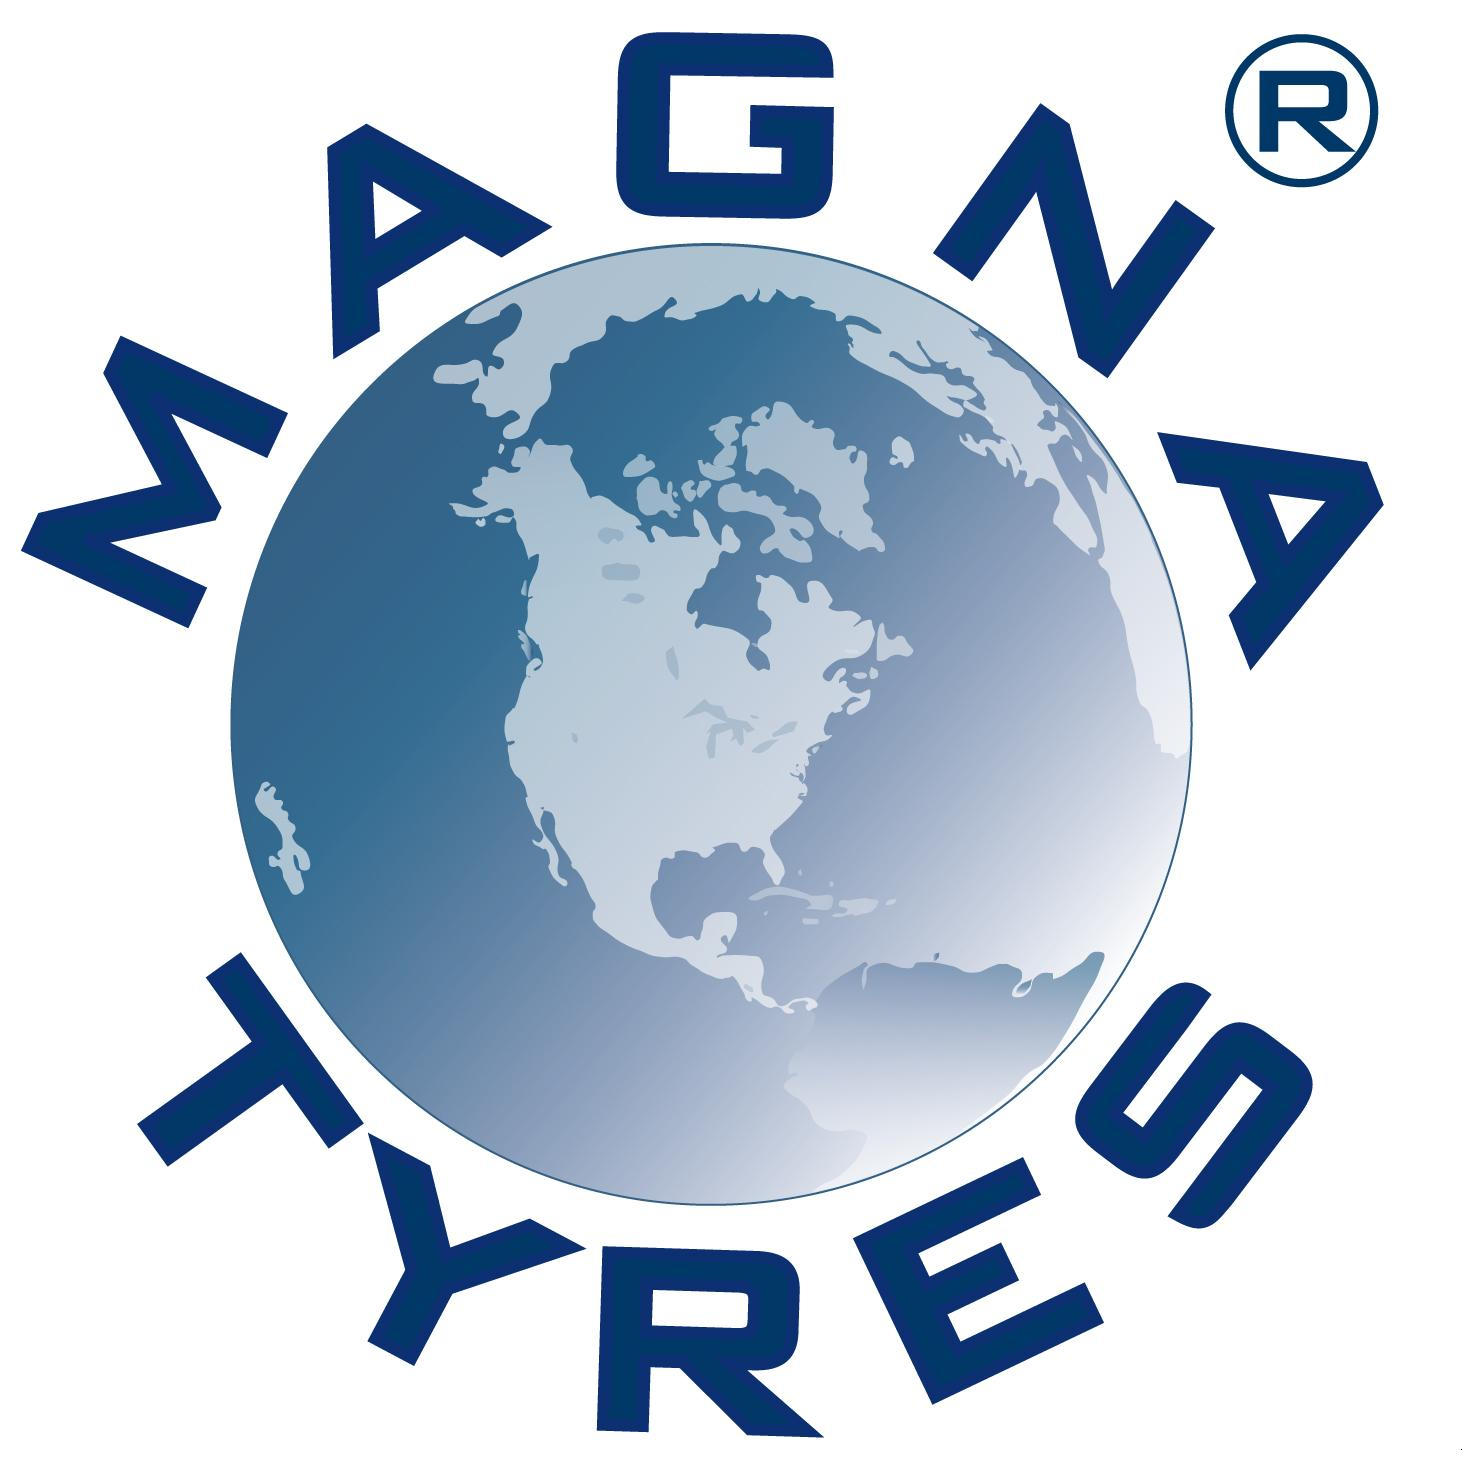 Magna Tyres says it is seeing increasing demand for its products in Eastern Europe